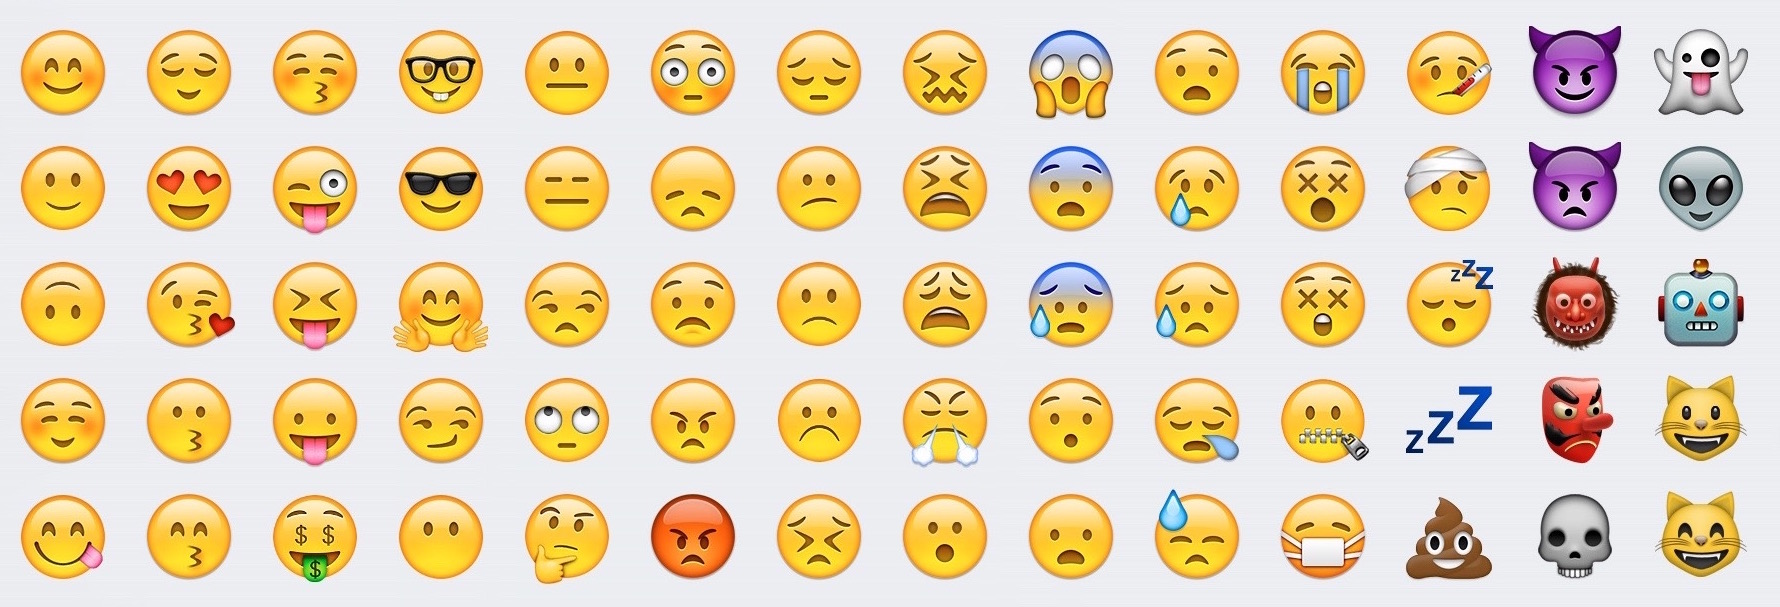 Ios 9 1 Includes New Emojis